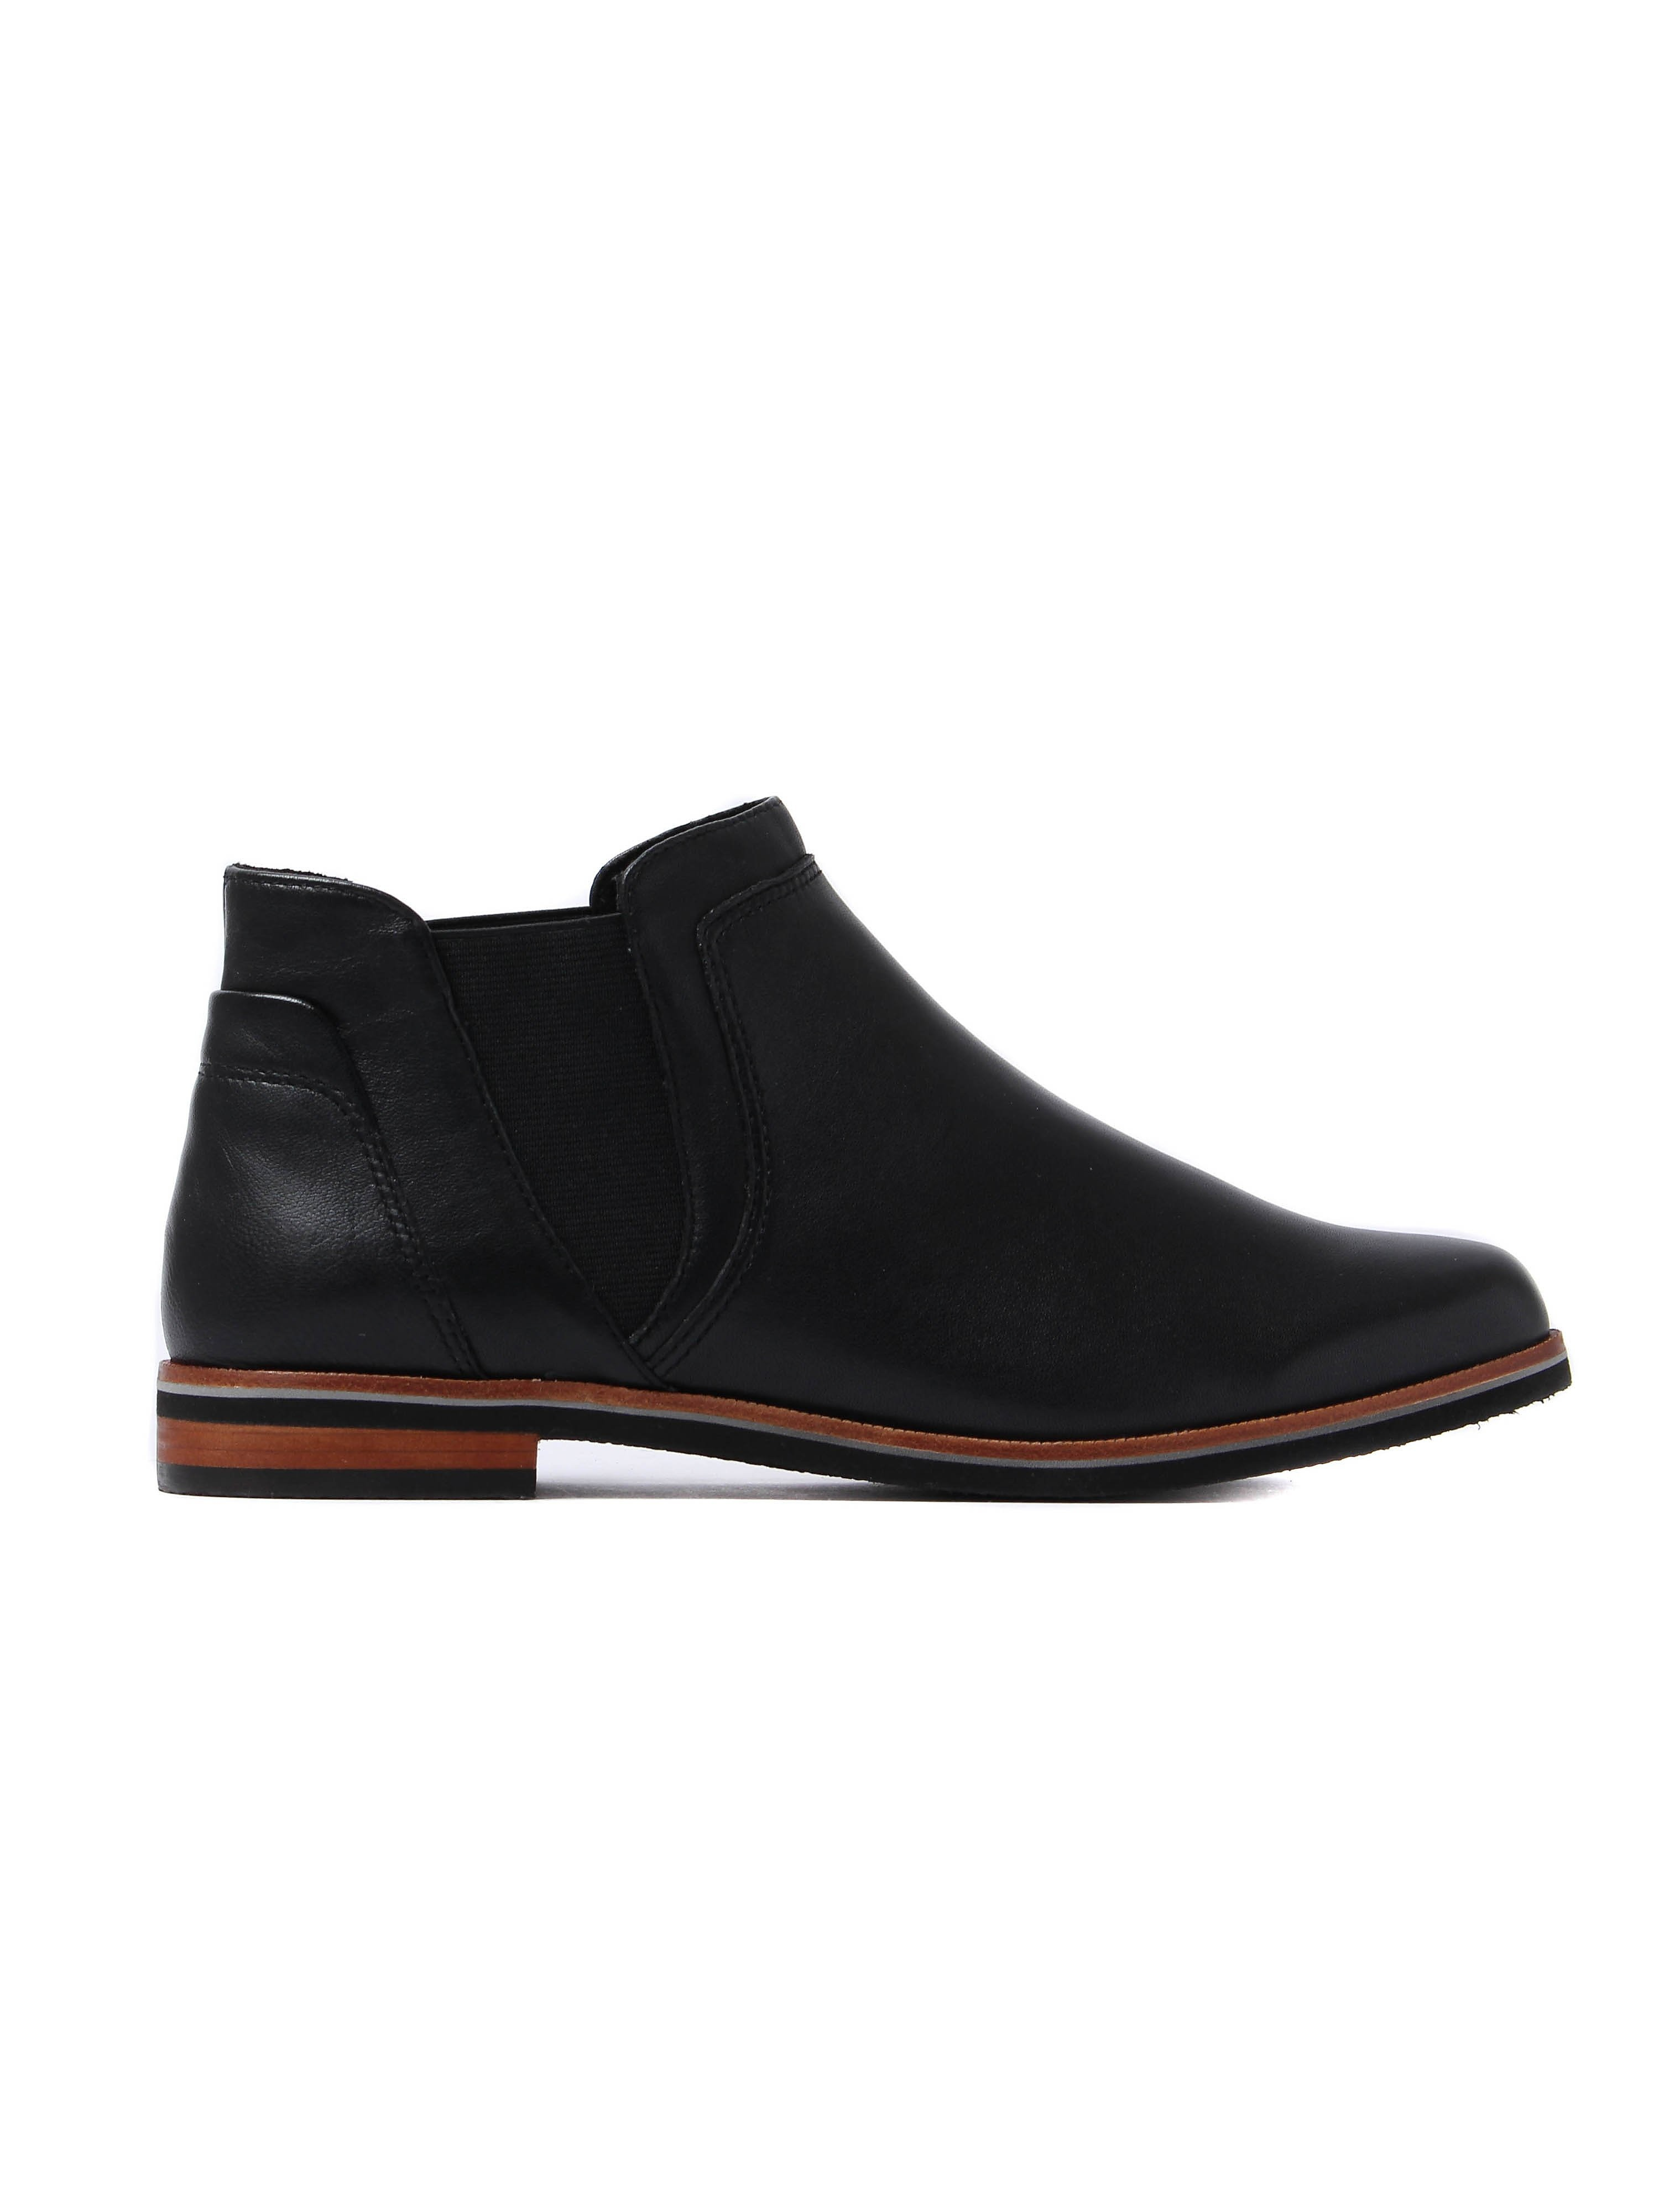 Caprice Women's Chelsea Boots - Black Leather